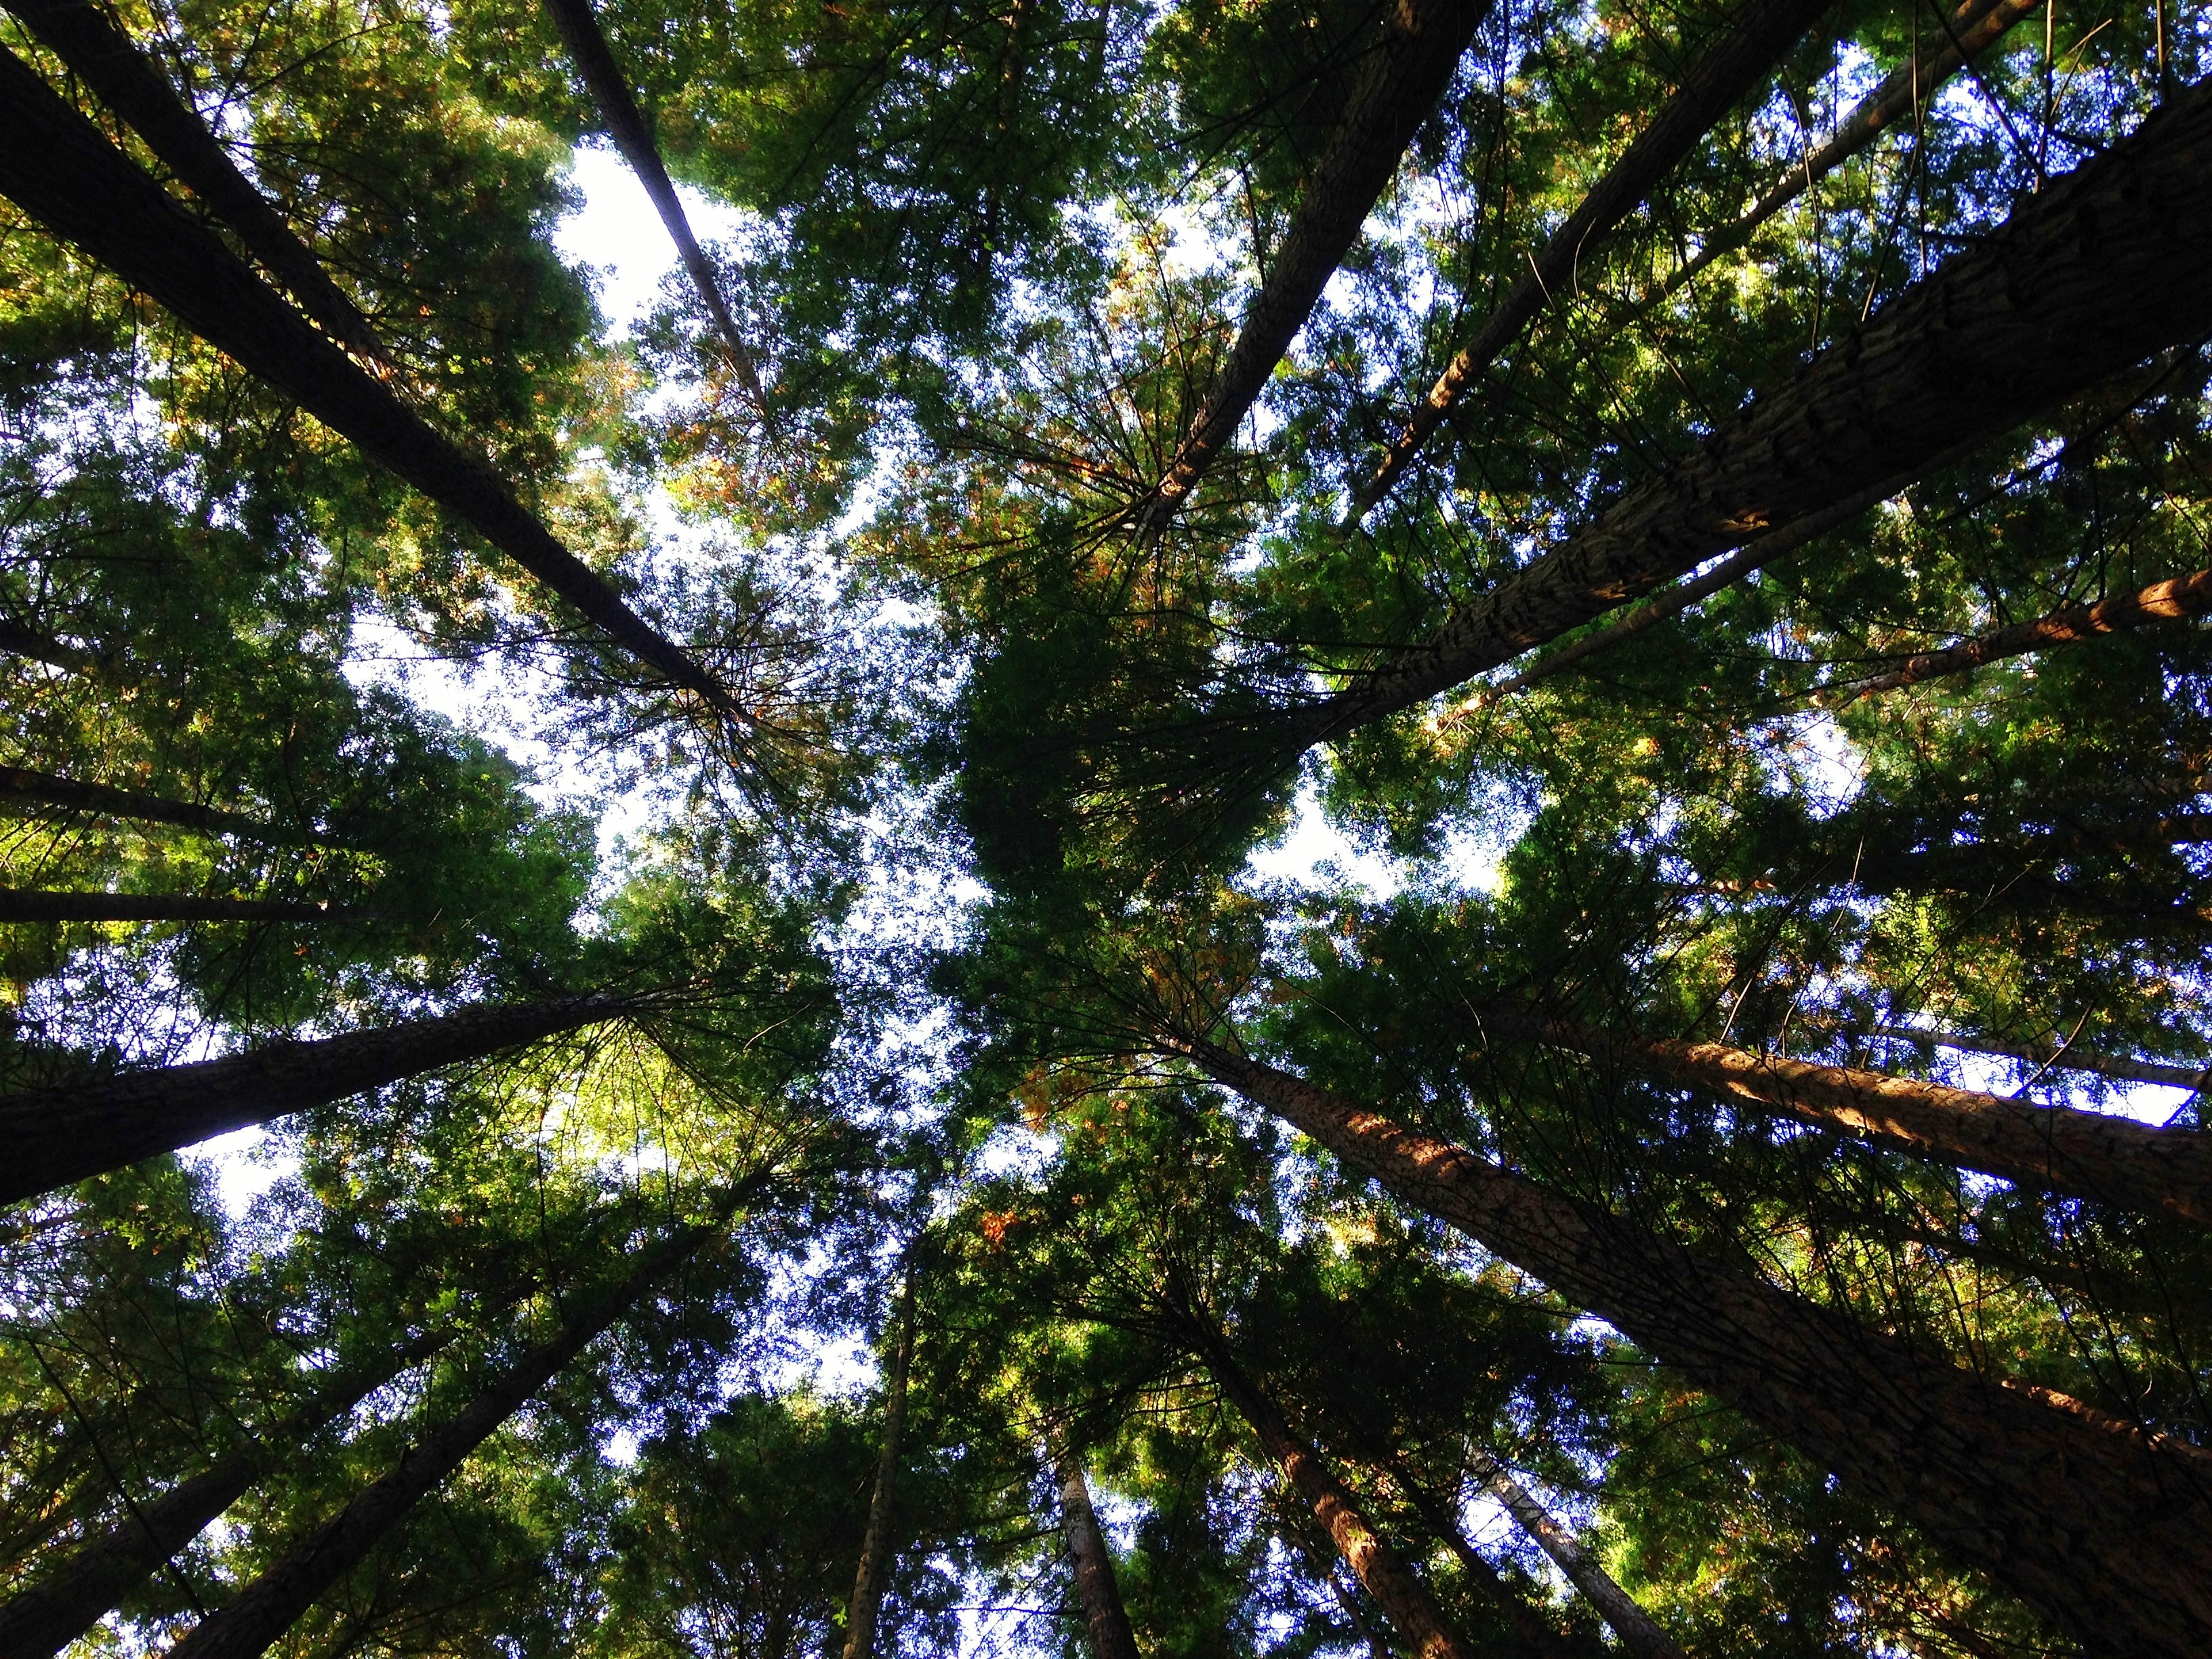 A low-angle shot of a canopy formed by tall trees